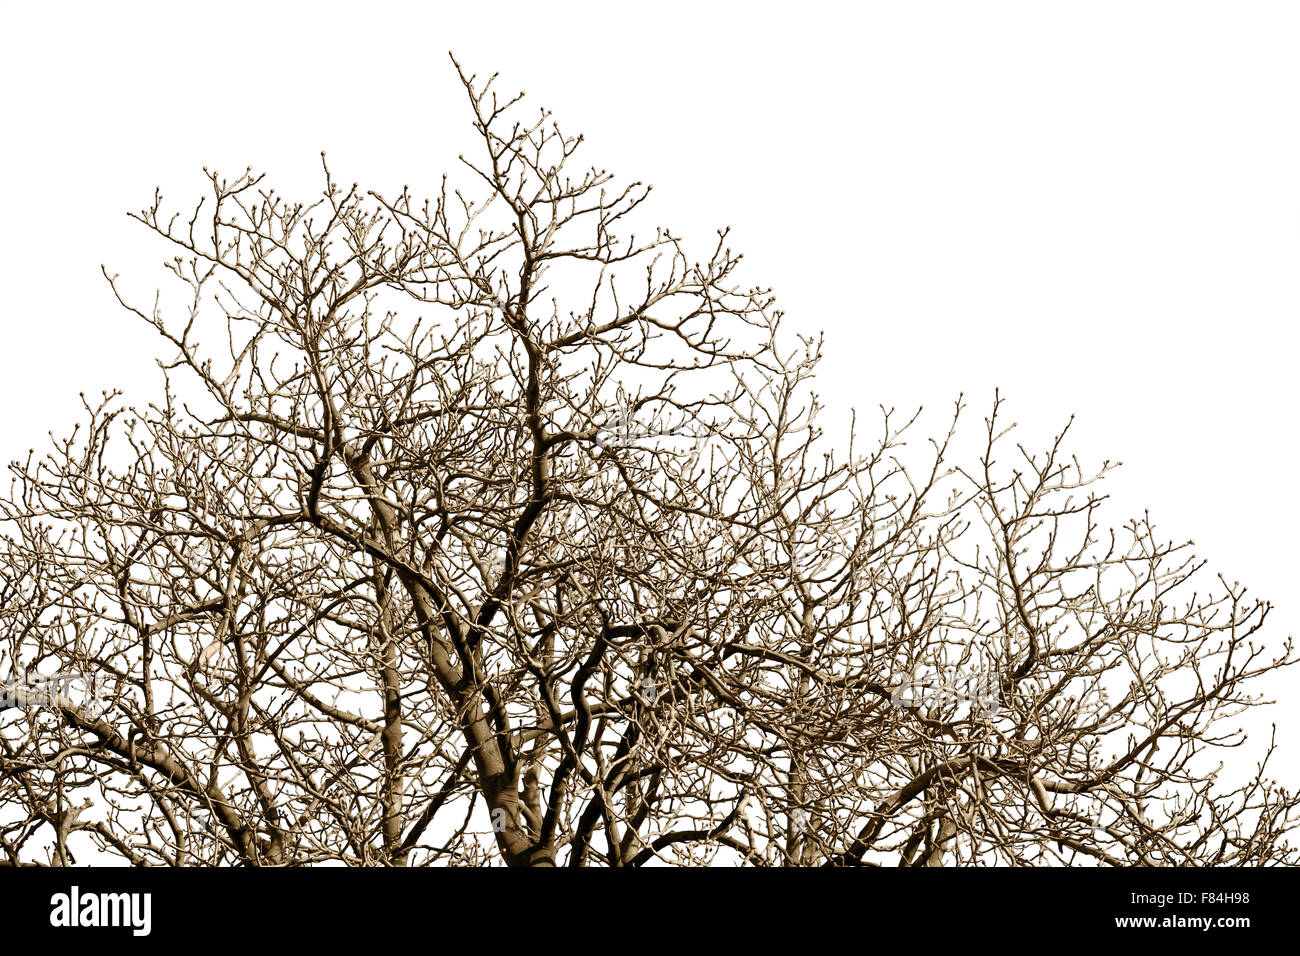 Leafless tree branches with many twigs against a winter sky. - Stock Image